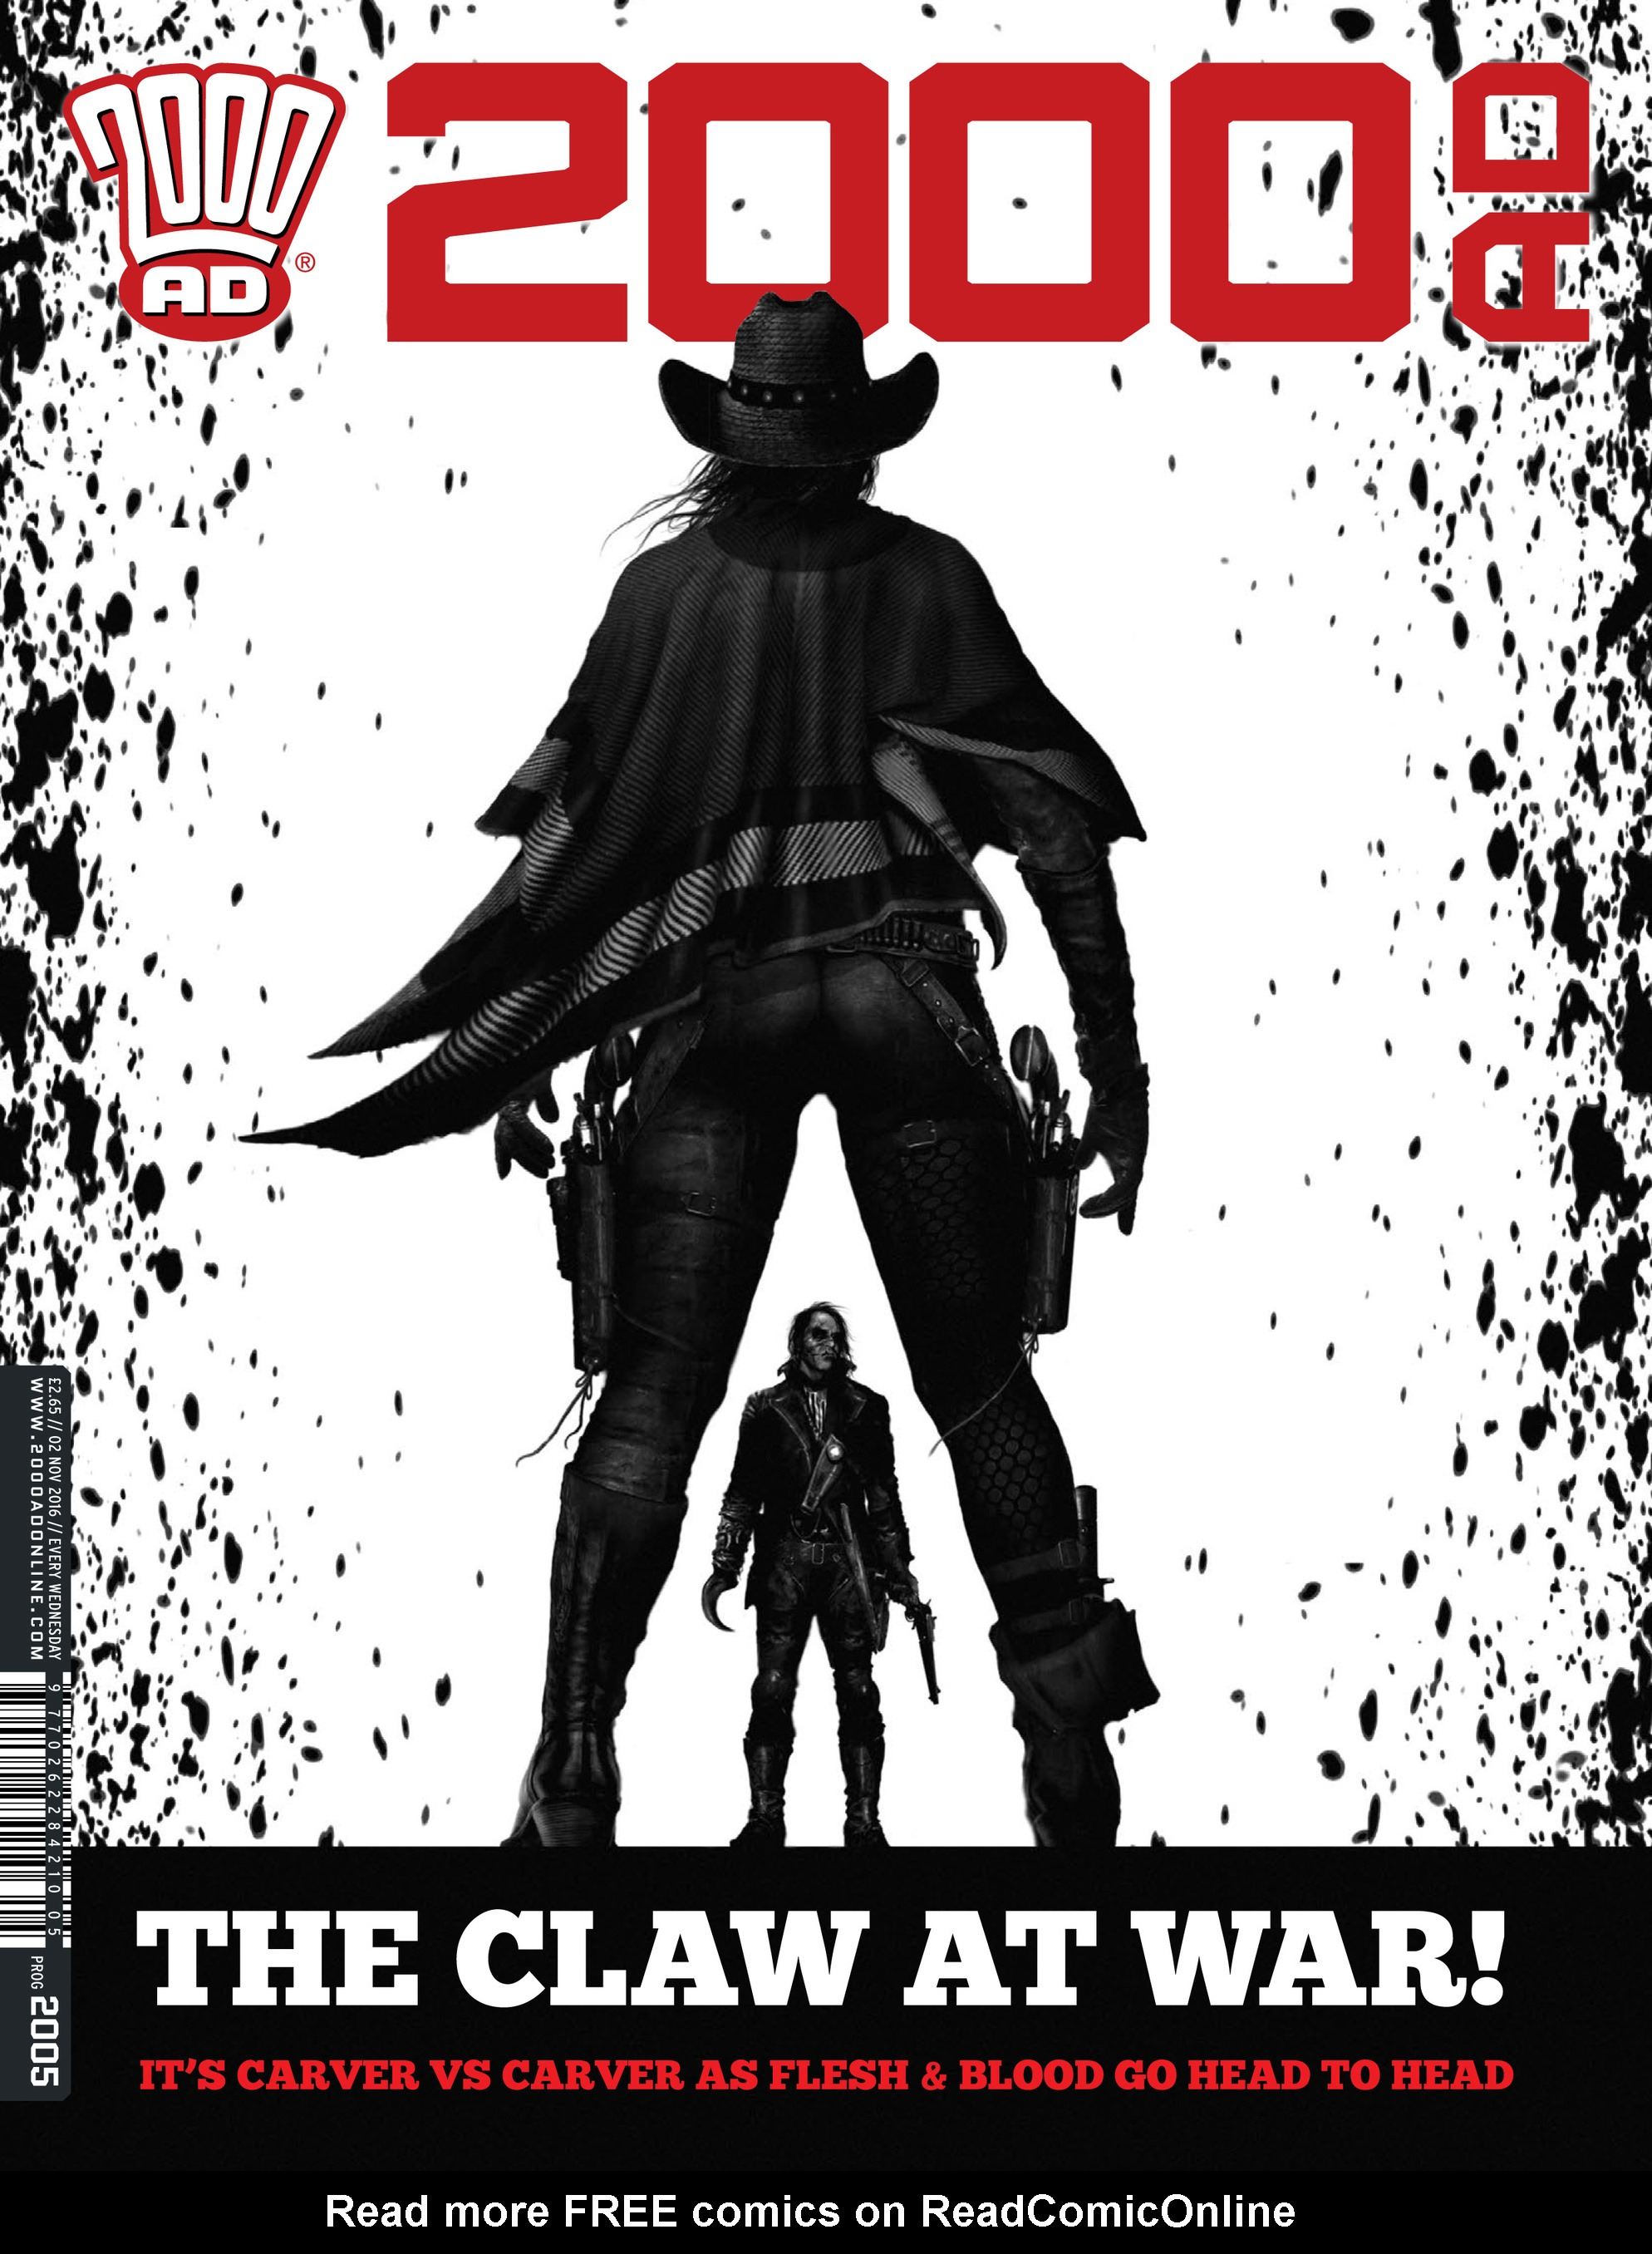 Read online 2000 AD comic -  Issue #2005 - 1